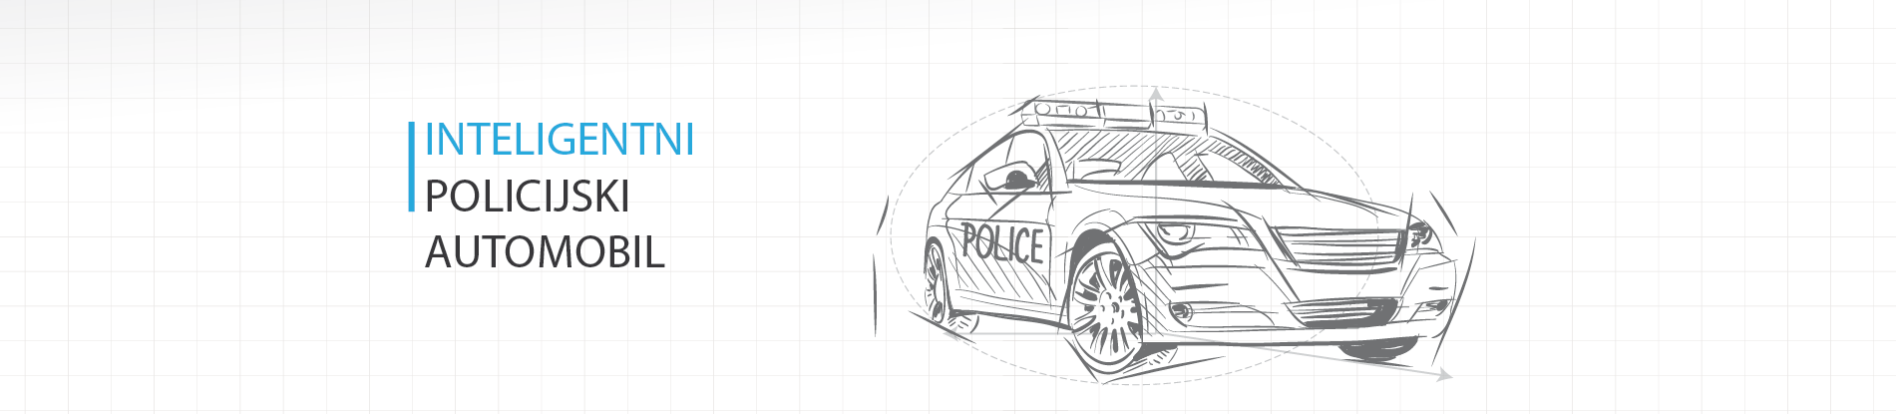 intelligent police car_srb